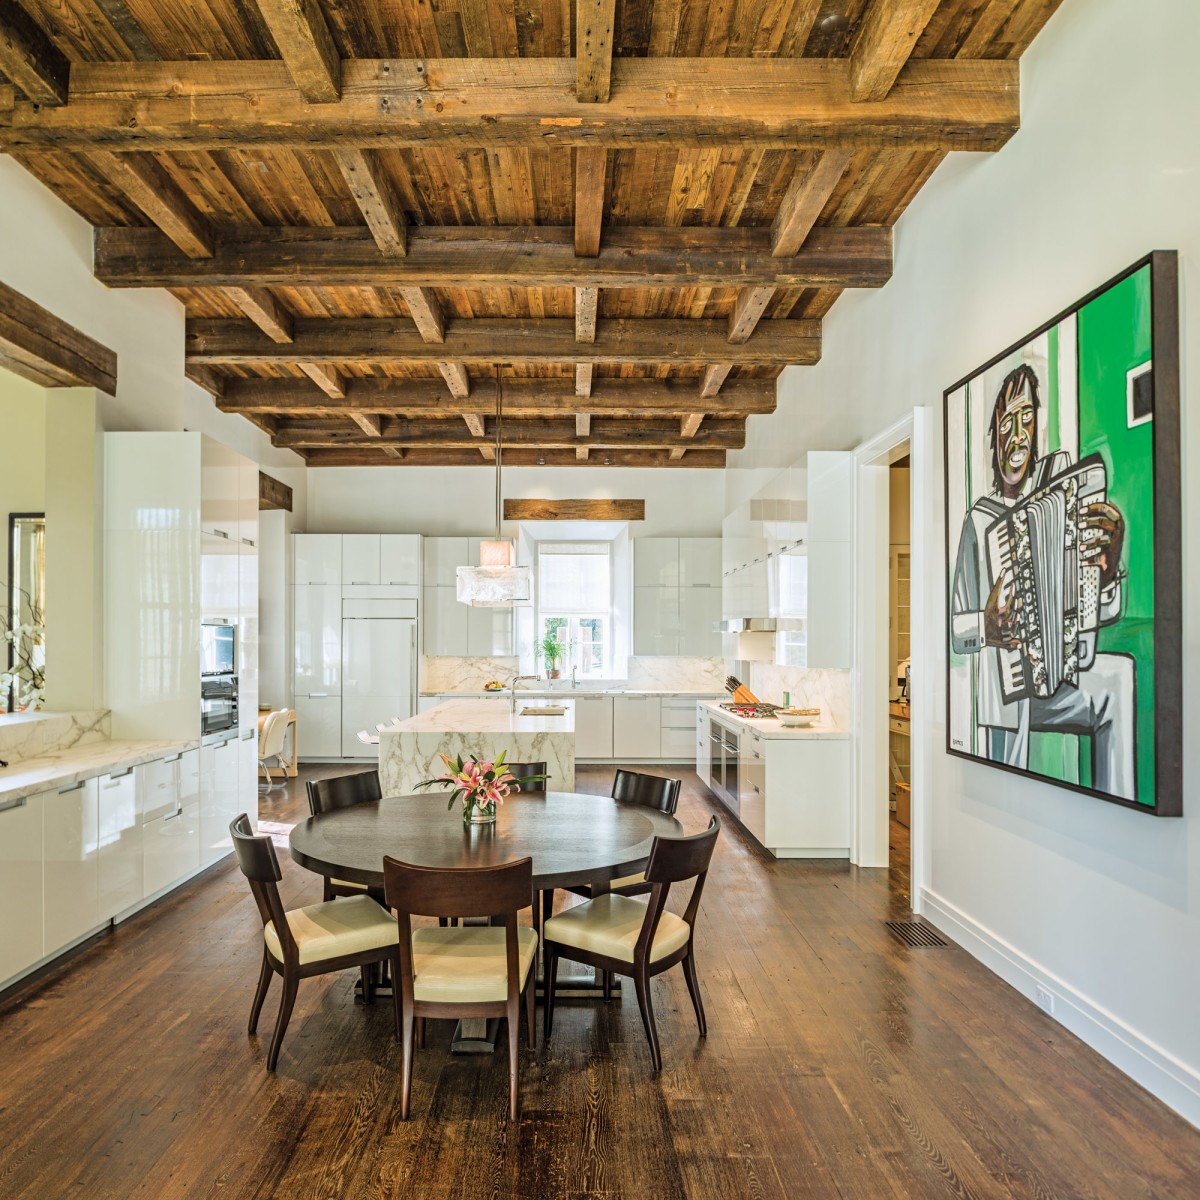 A modern Italian kitchen juxtaposes the old beams and smooth plaster walls in the kitchen.